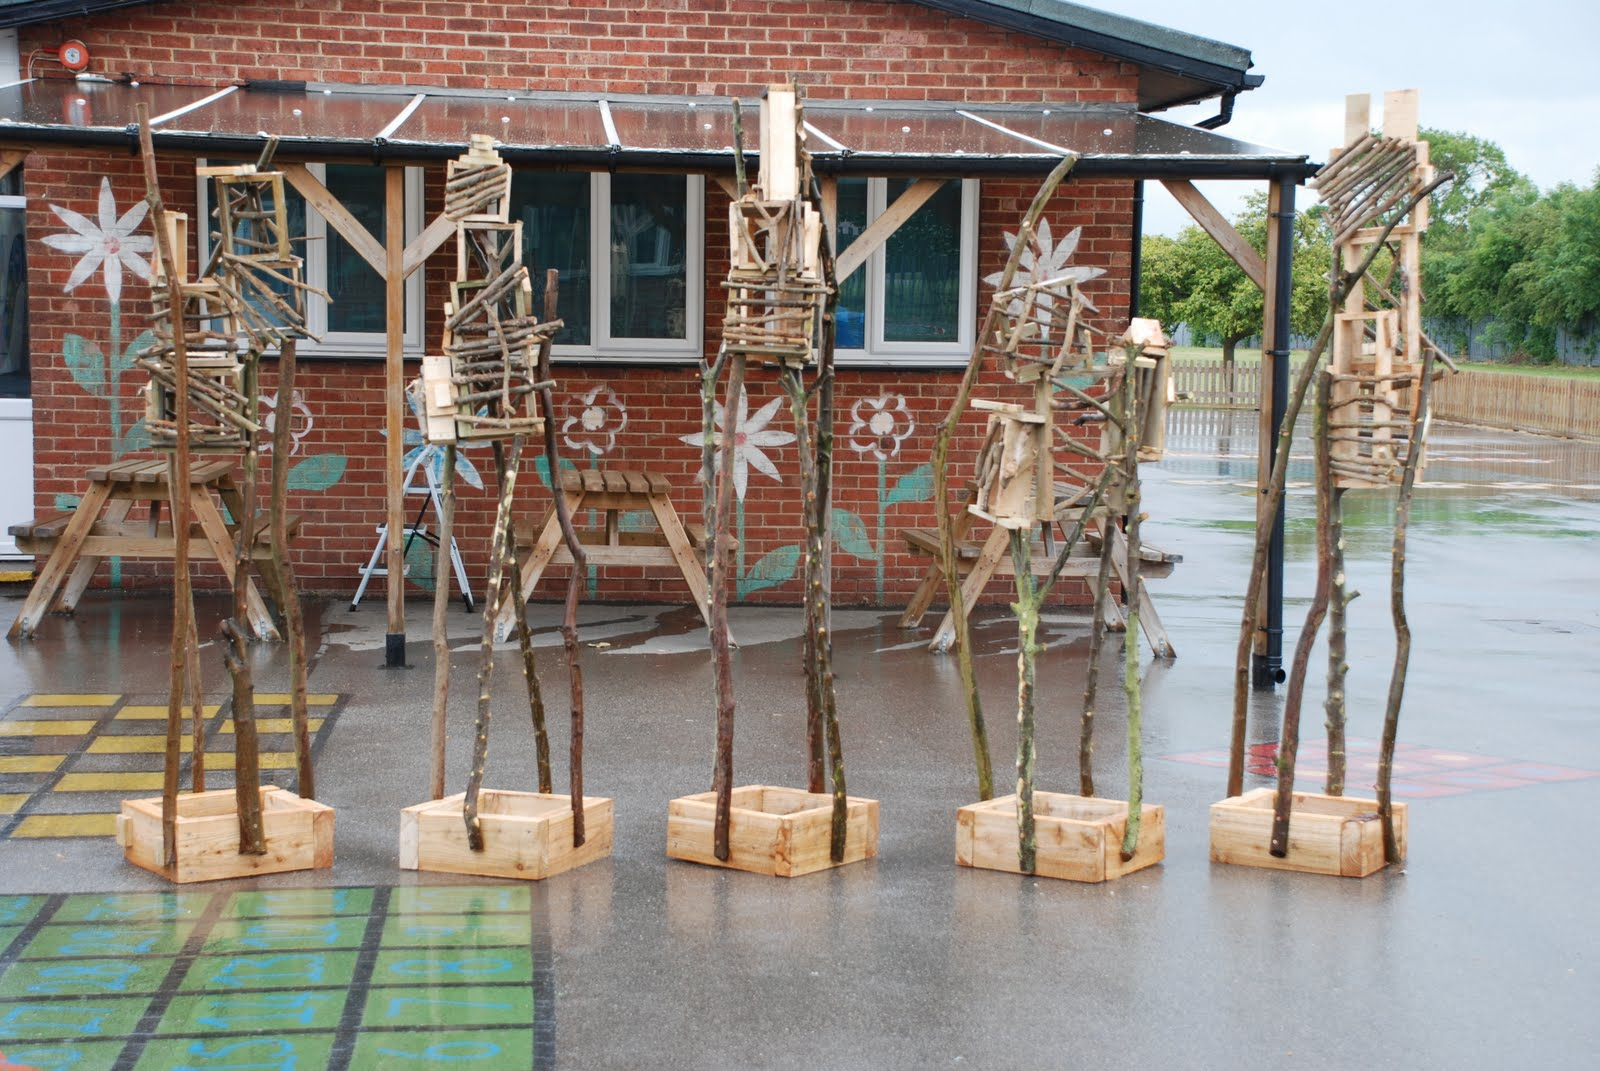 Beau My Proposal To The School Was Totemic Sculpture At Least 1.8 Metres High  Constructed From Cut Up Pallet Wood And Rustic Hazel, Ash And Apple  Stickwood